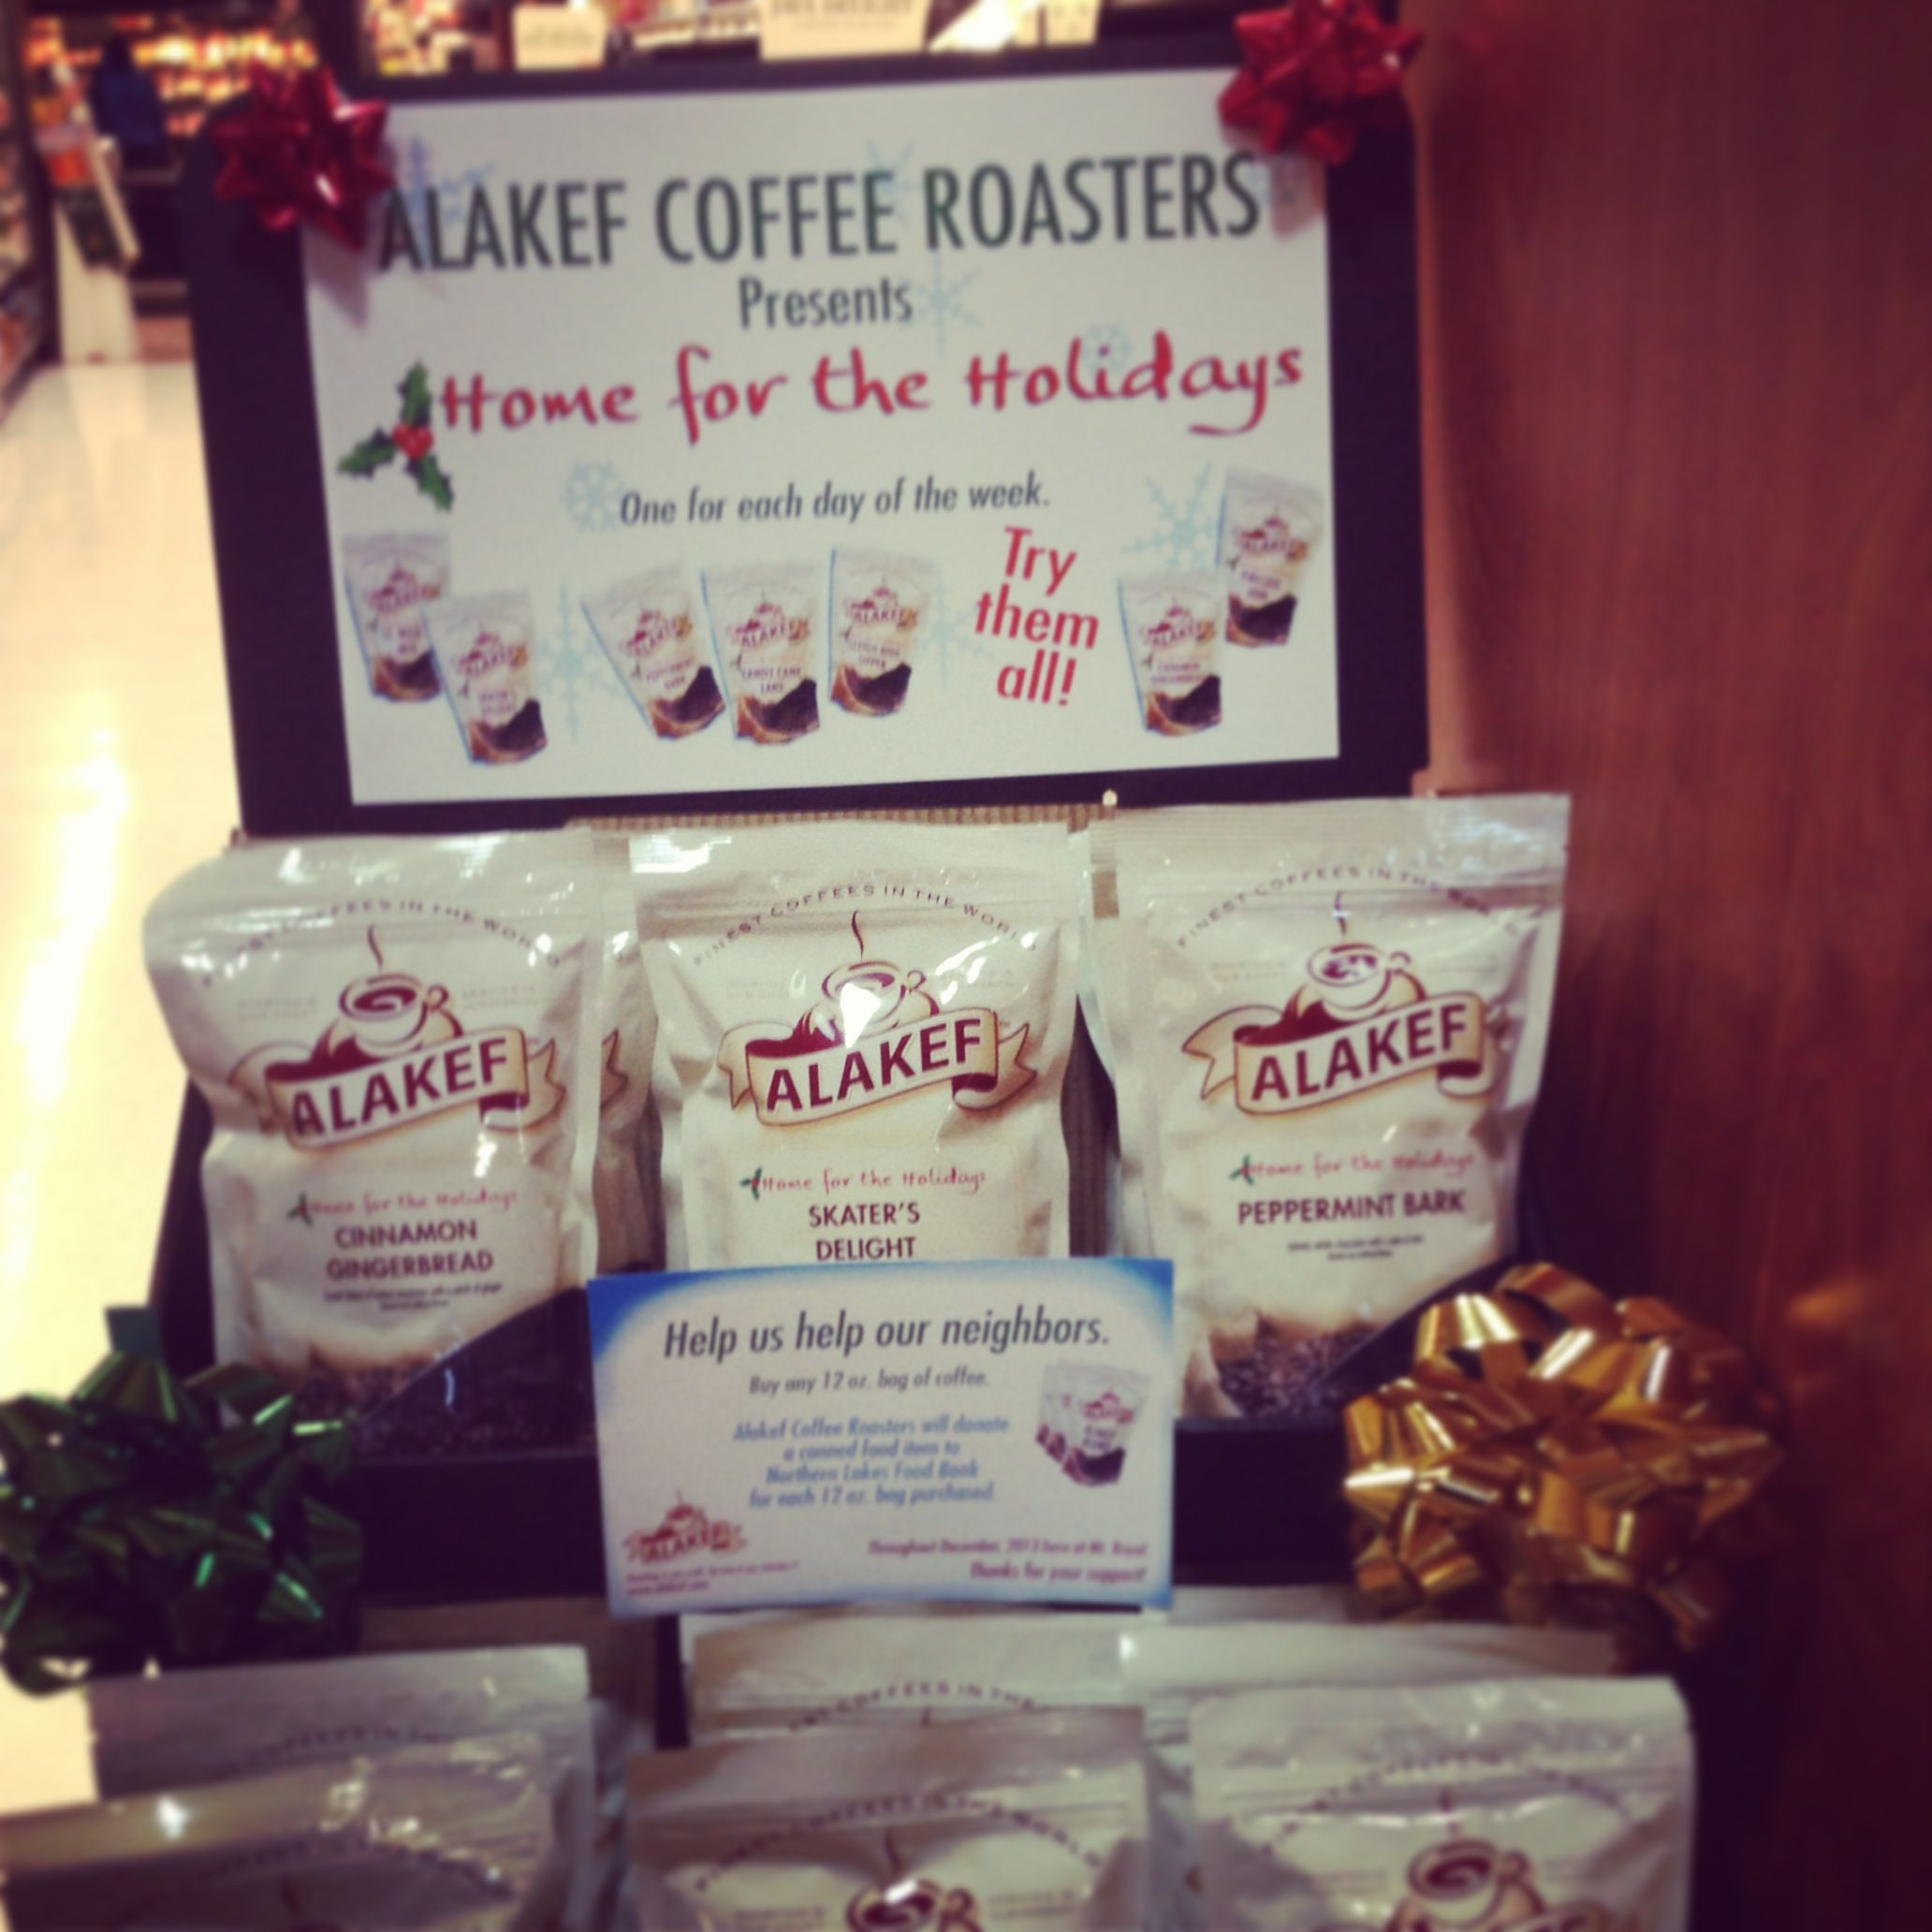 Alakef coffee roasters home for the holiday collection